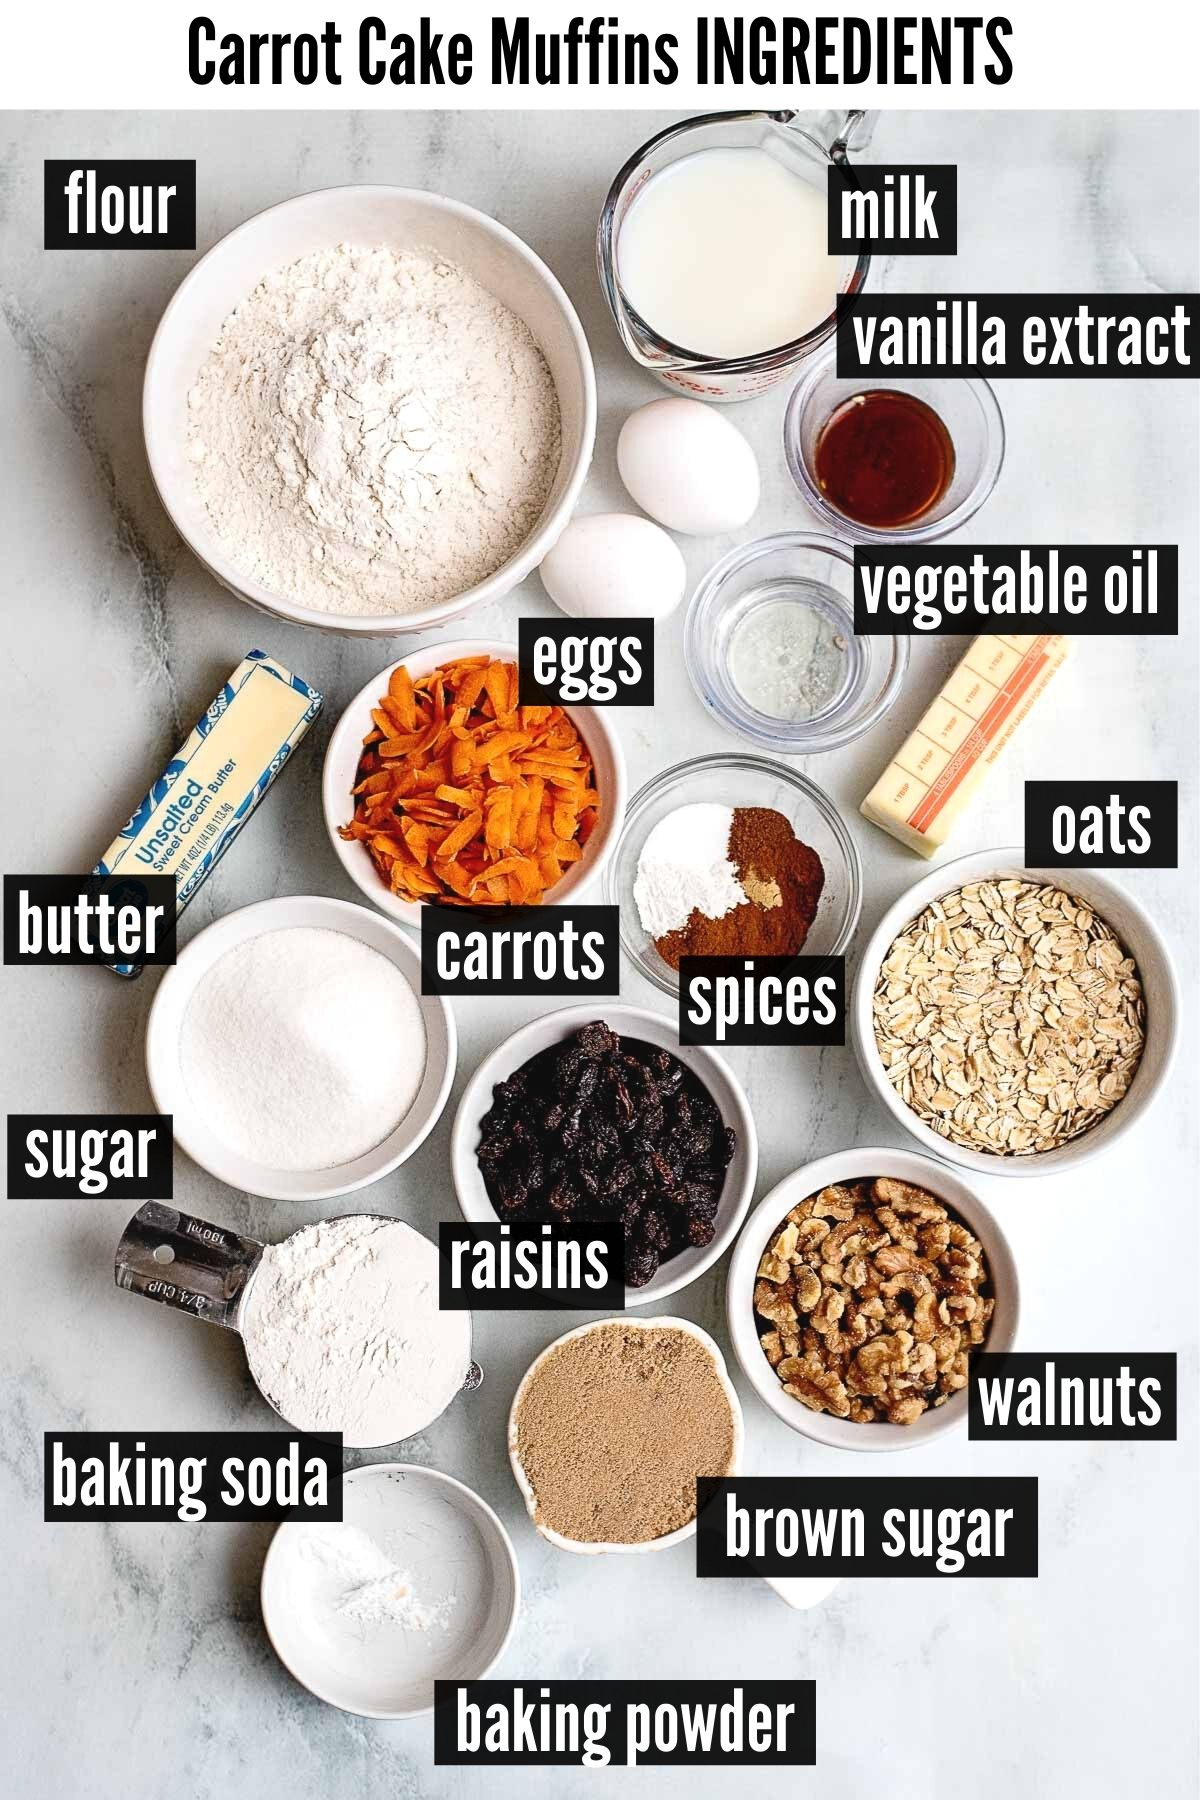 carrot cake muffins ingredients